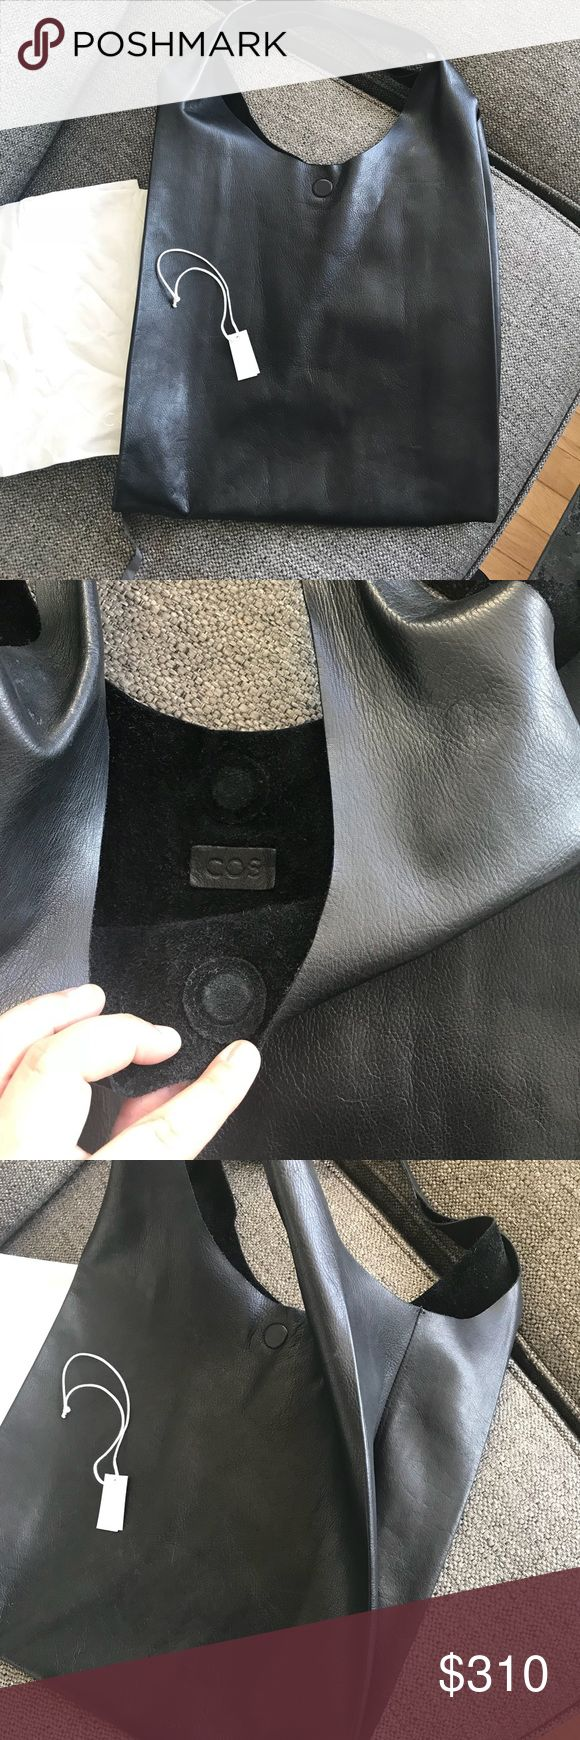 COS Leather Tote Bag In great Used condition, Leather is butter soft, magnetic closure. Sold out everywhere. This bag is such a great bag to take for work fits a big laptop, or ever grocery shopping. Very universal. US Leather COS Bags